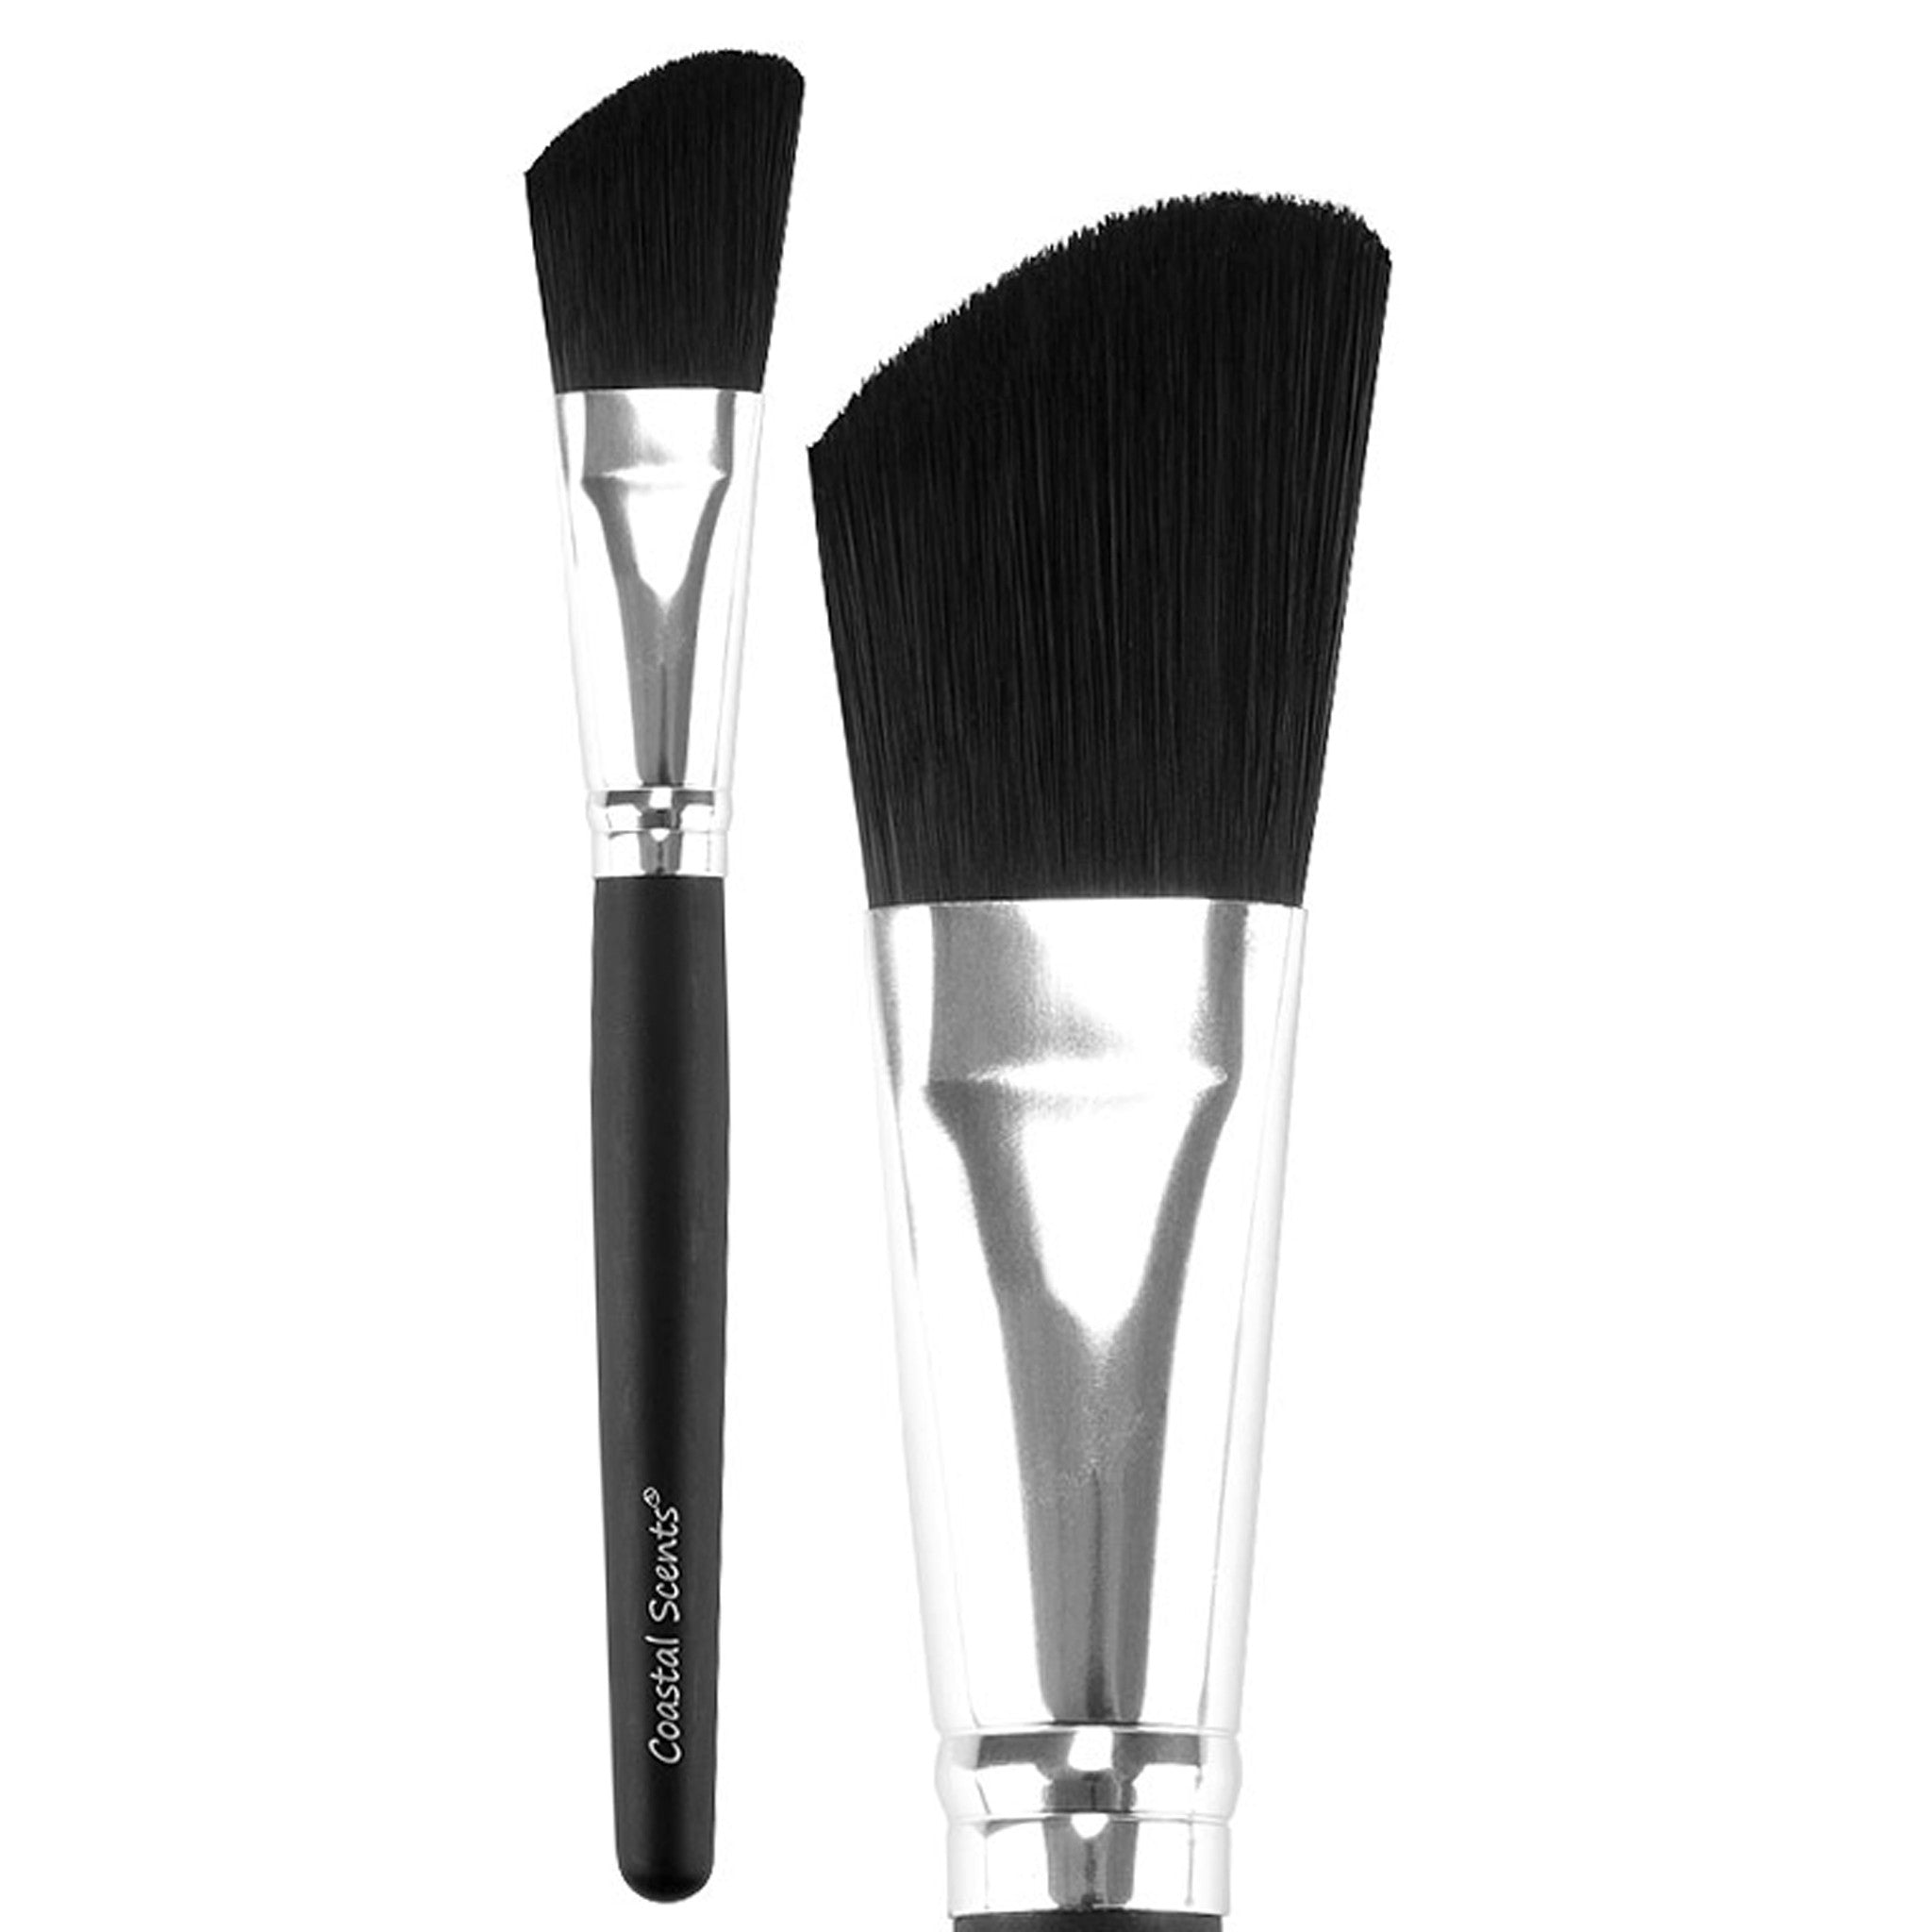 Coastal Scents coupon: Classic Angled Foundation Brush Synthetic